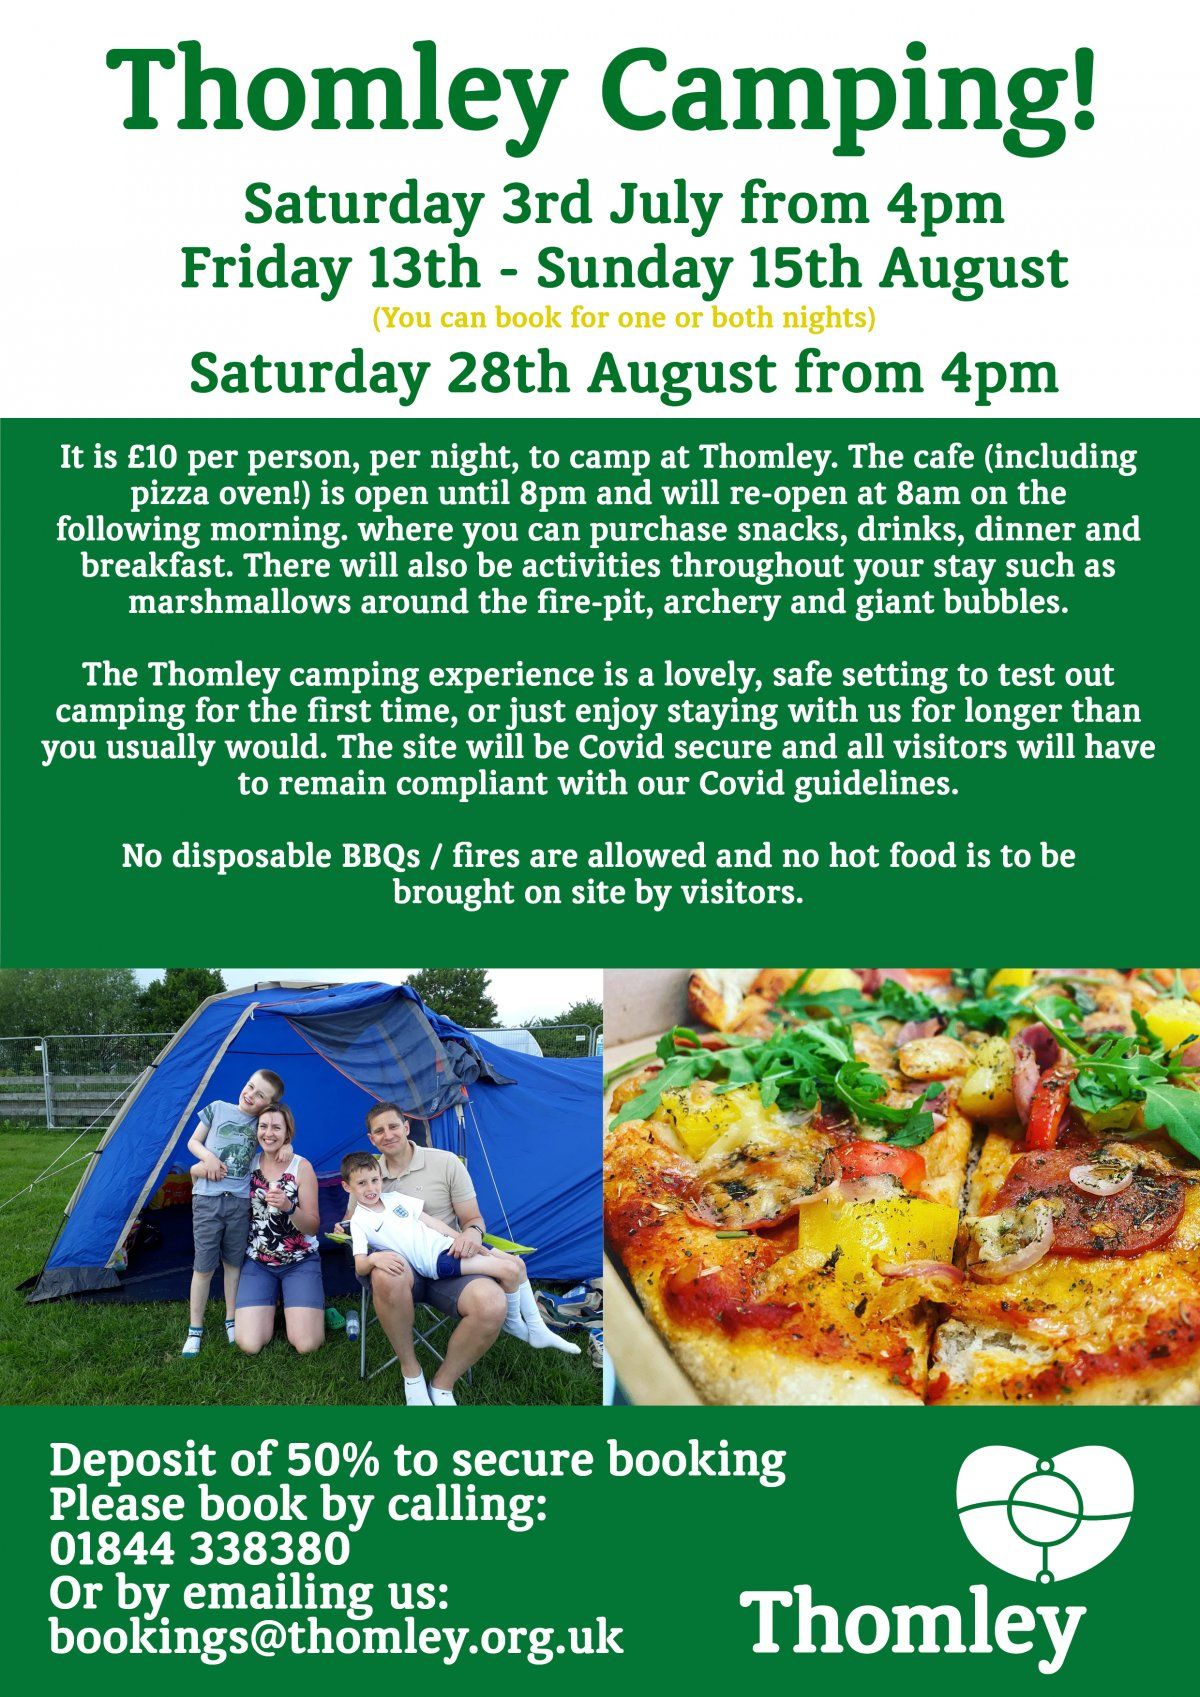 Summer Camping Dates Announced…